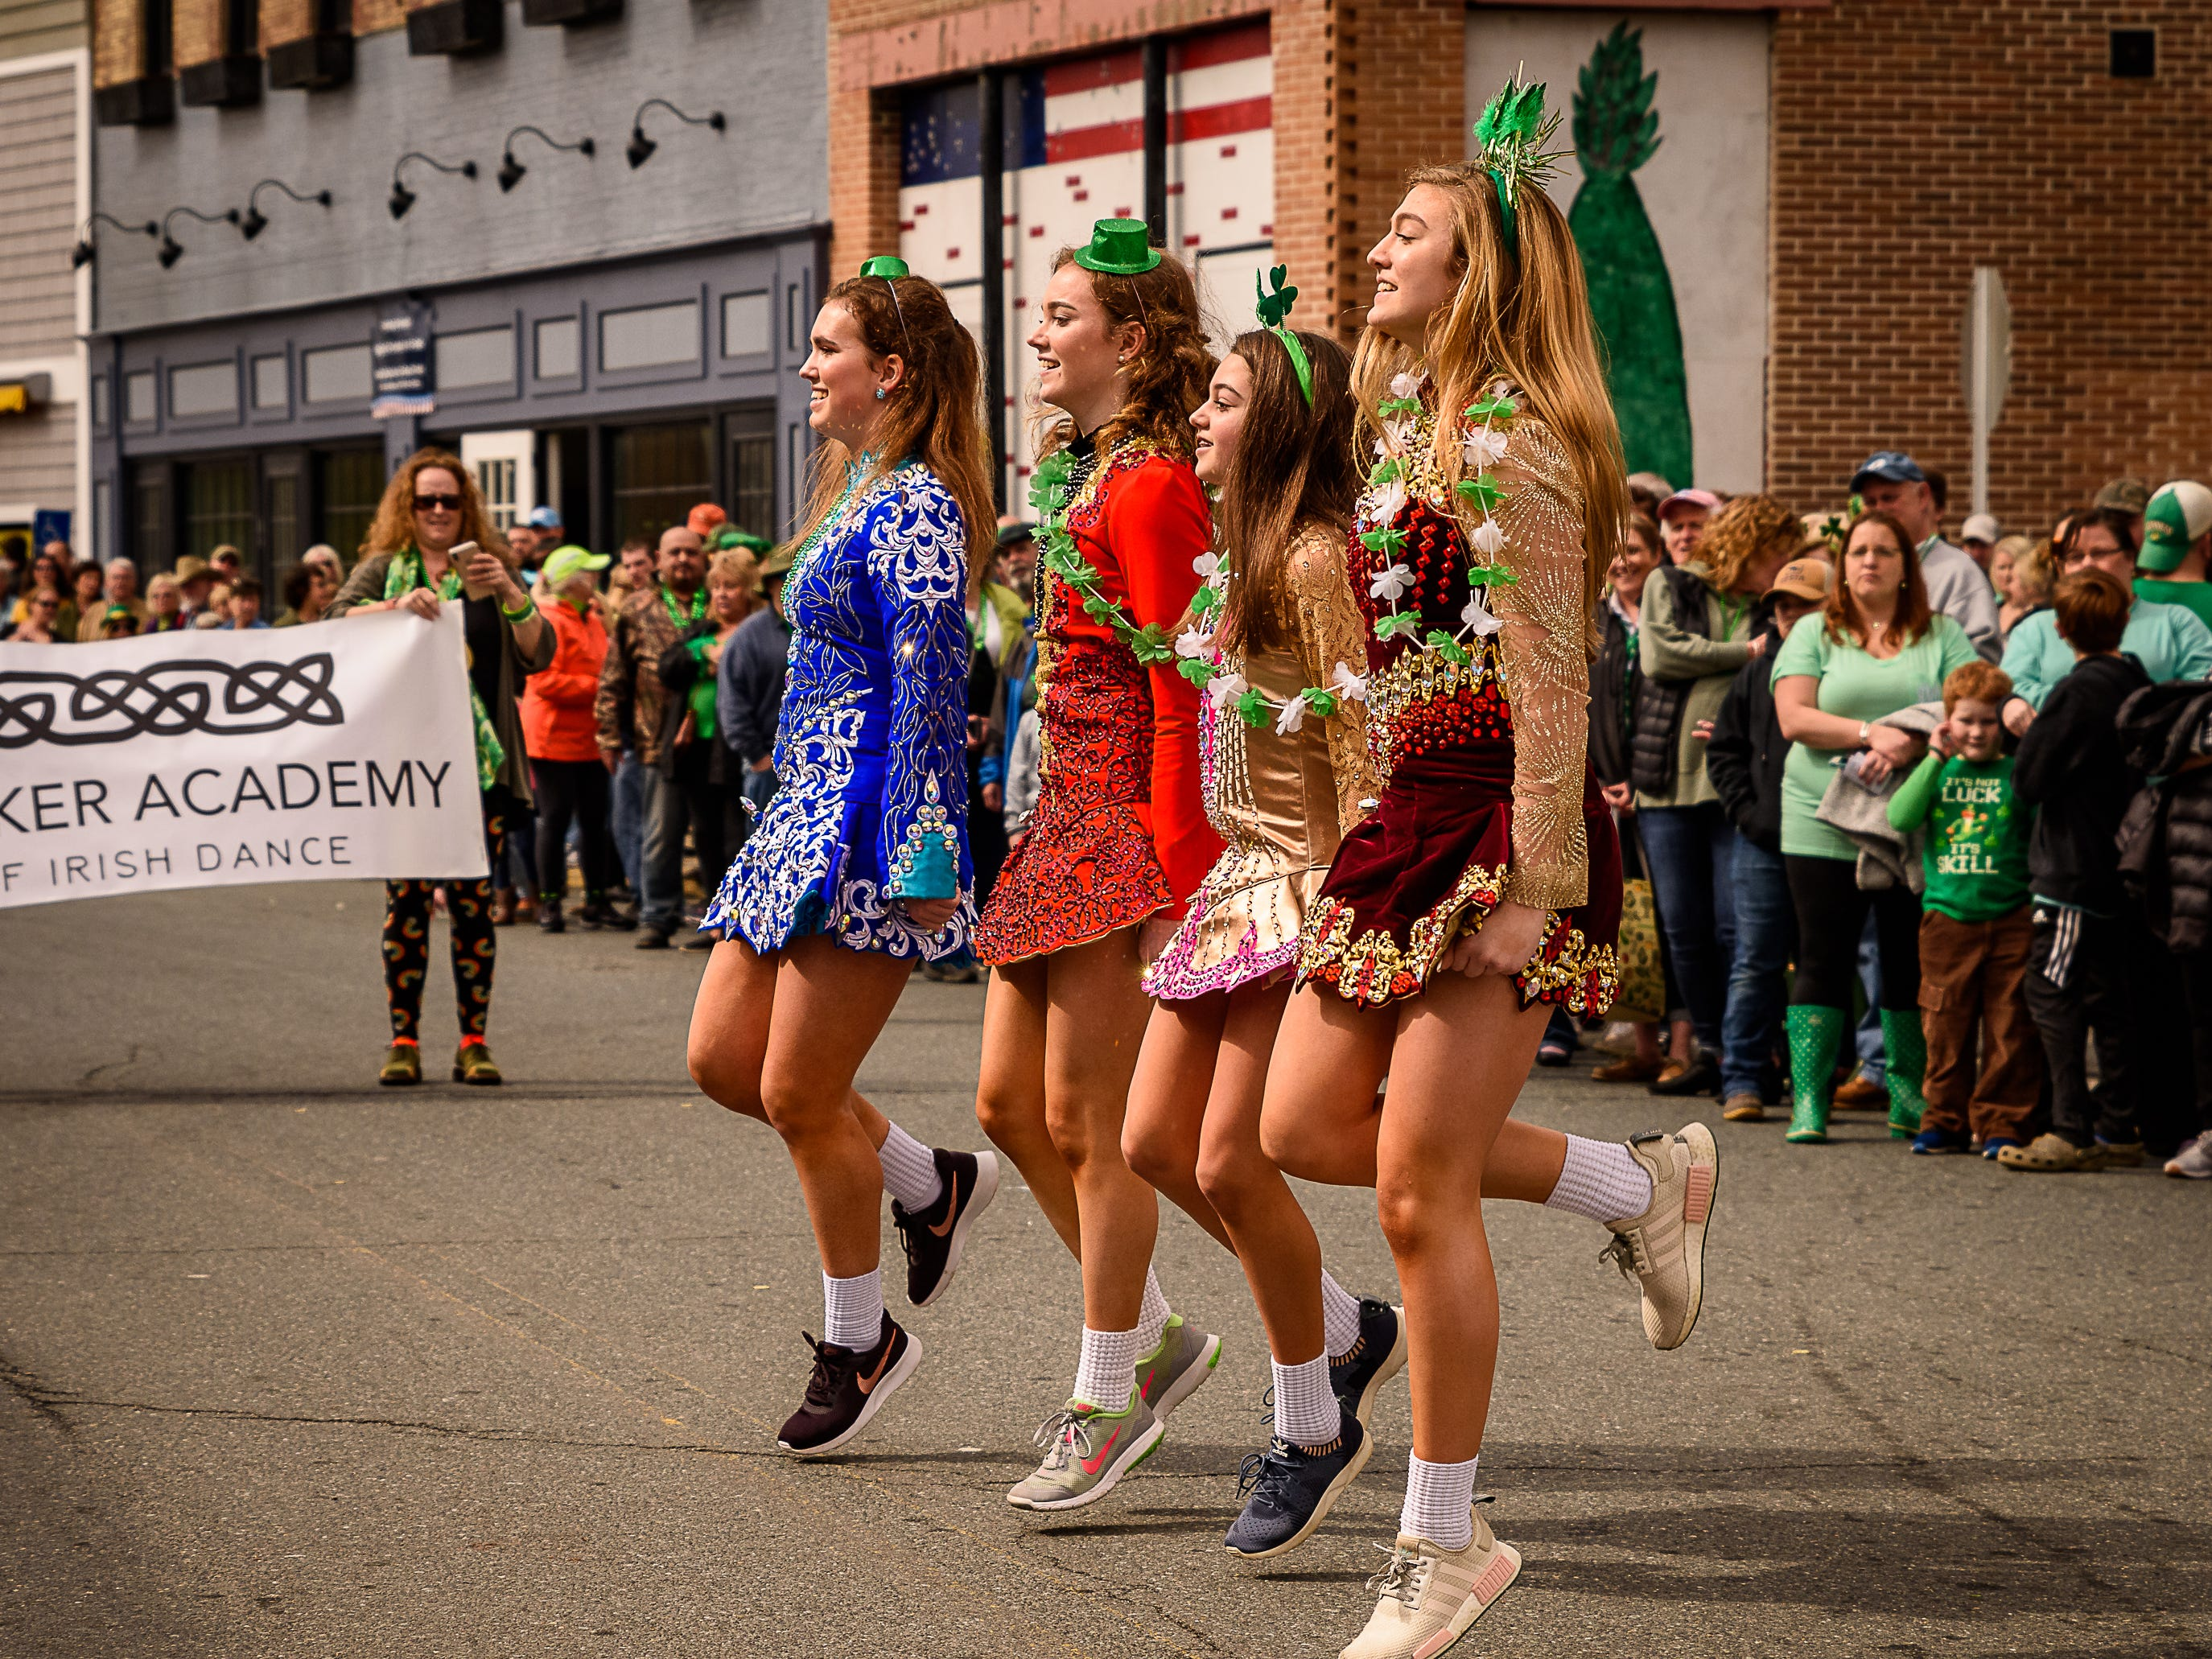 Members of The Walker Academy Of Irish Dance perform in the St Partick's parade in Onancock.